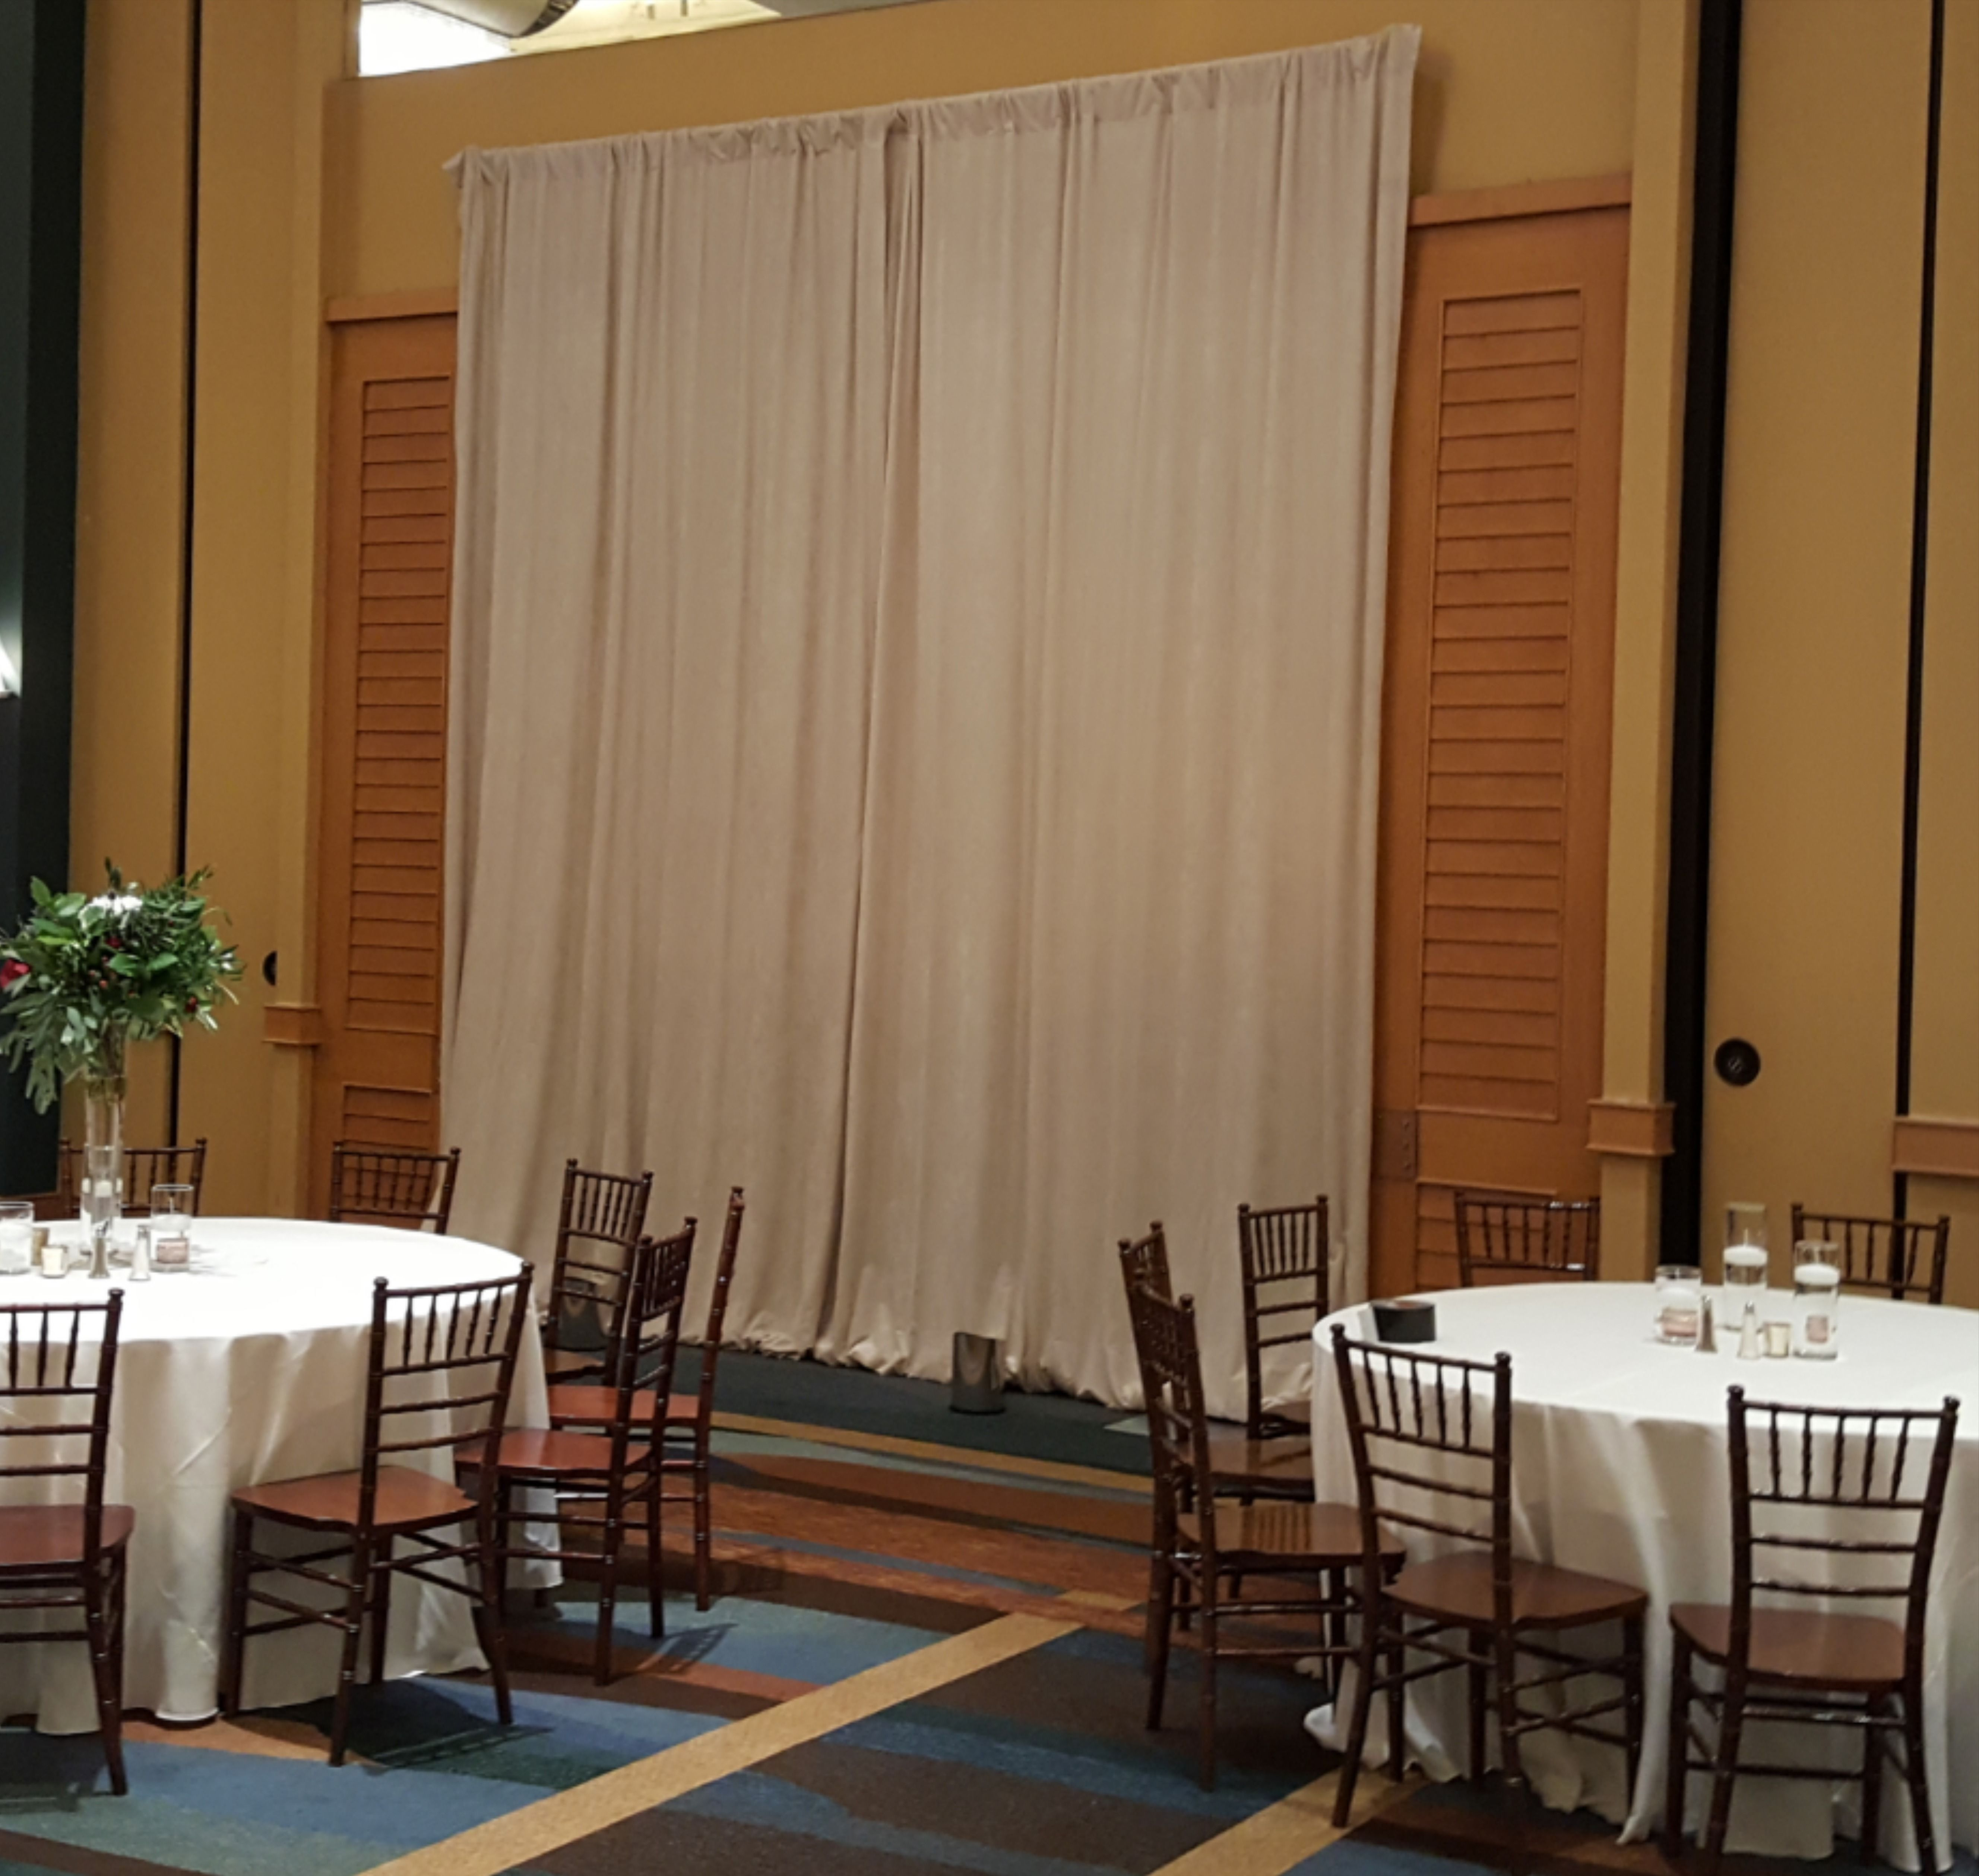 What Is Behind The Curtain In 2020 Curtains Home Decor Fabric